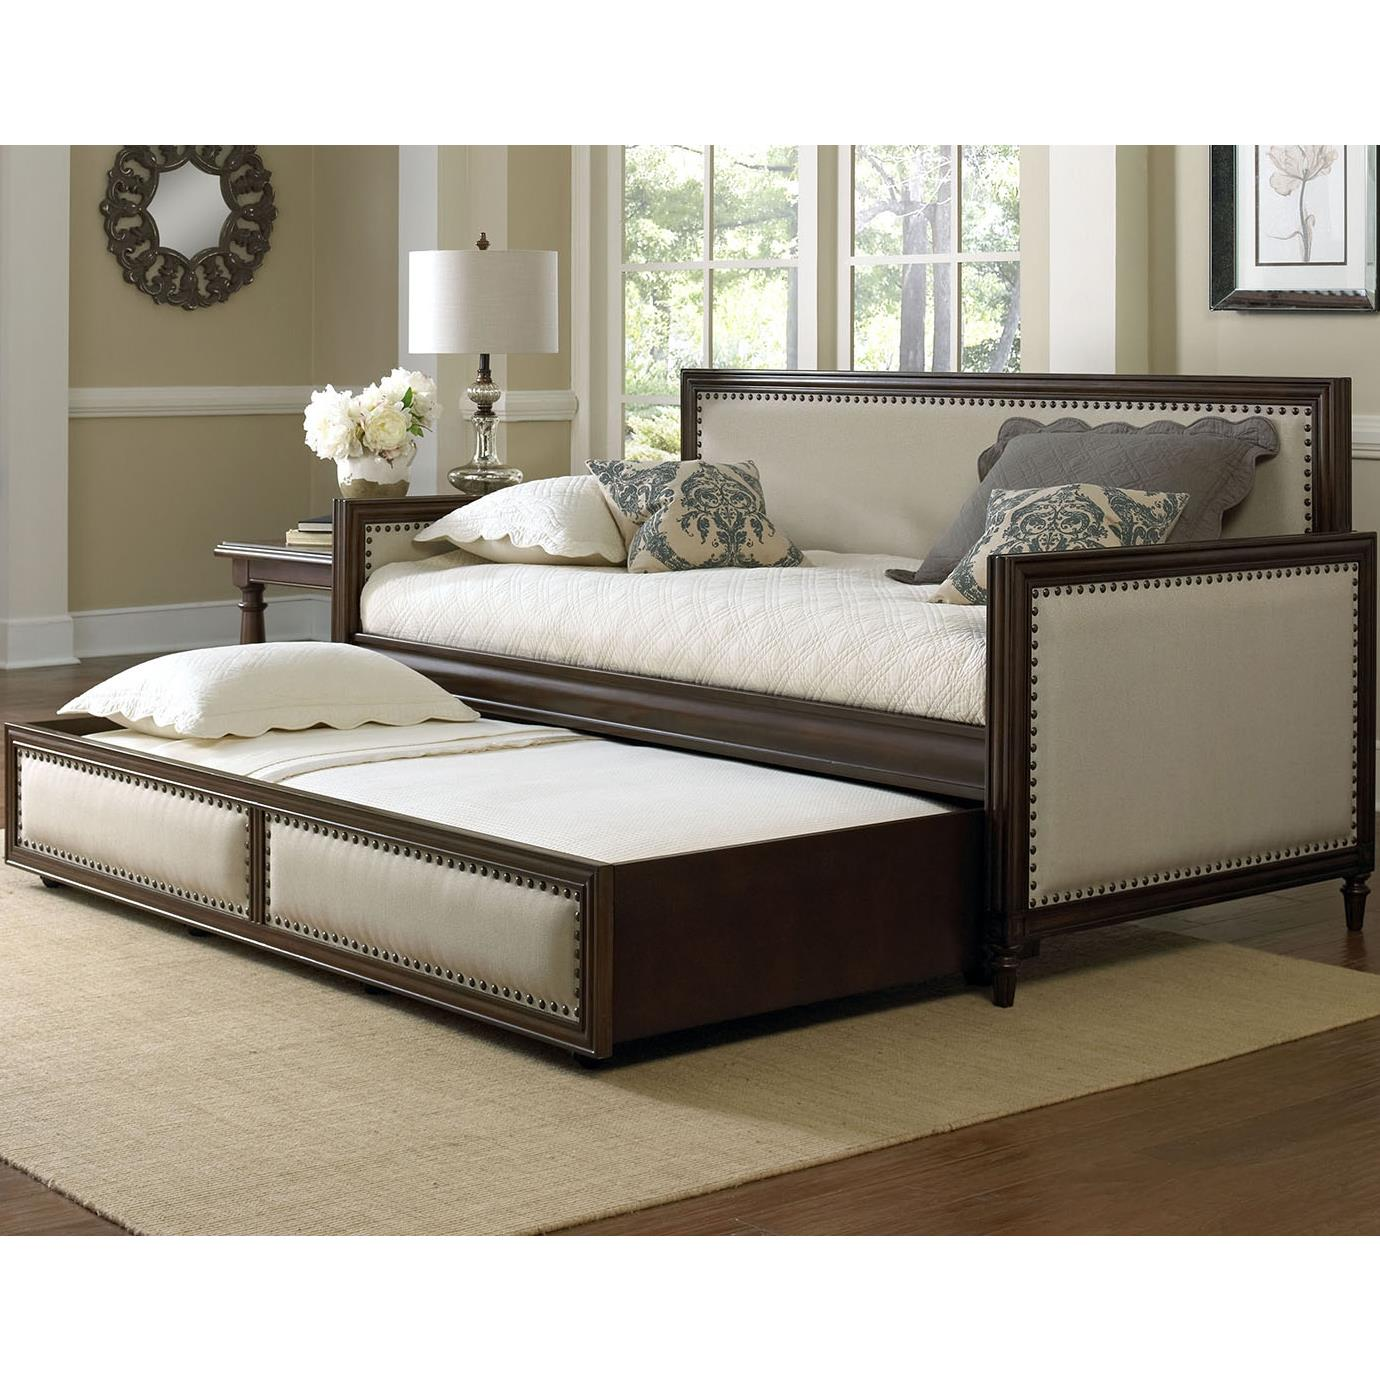 Fashion Bed Group Grandover Daybed - Item Number: B51033